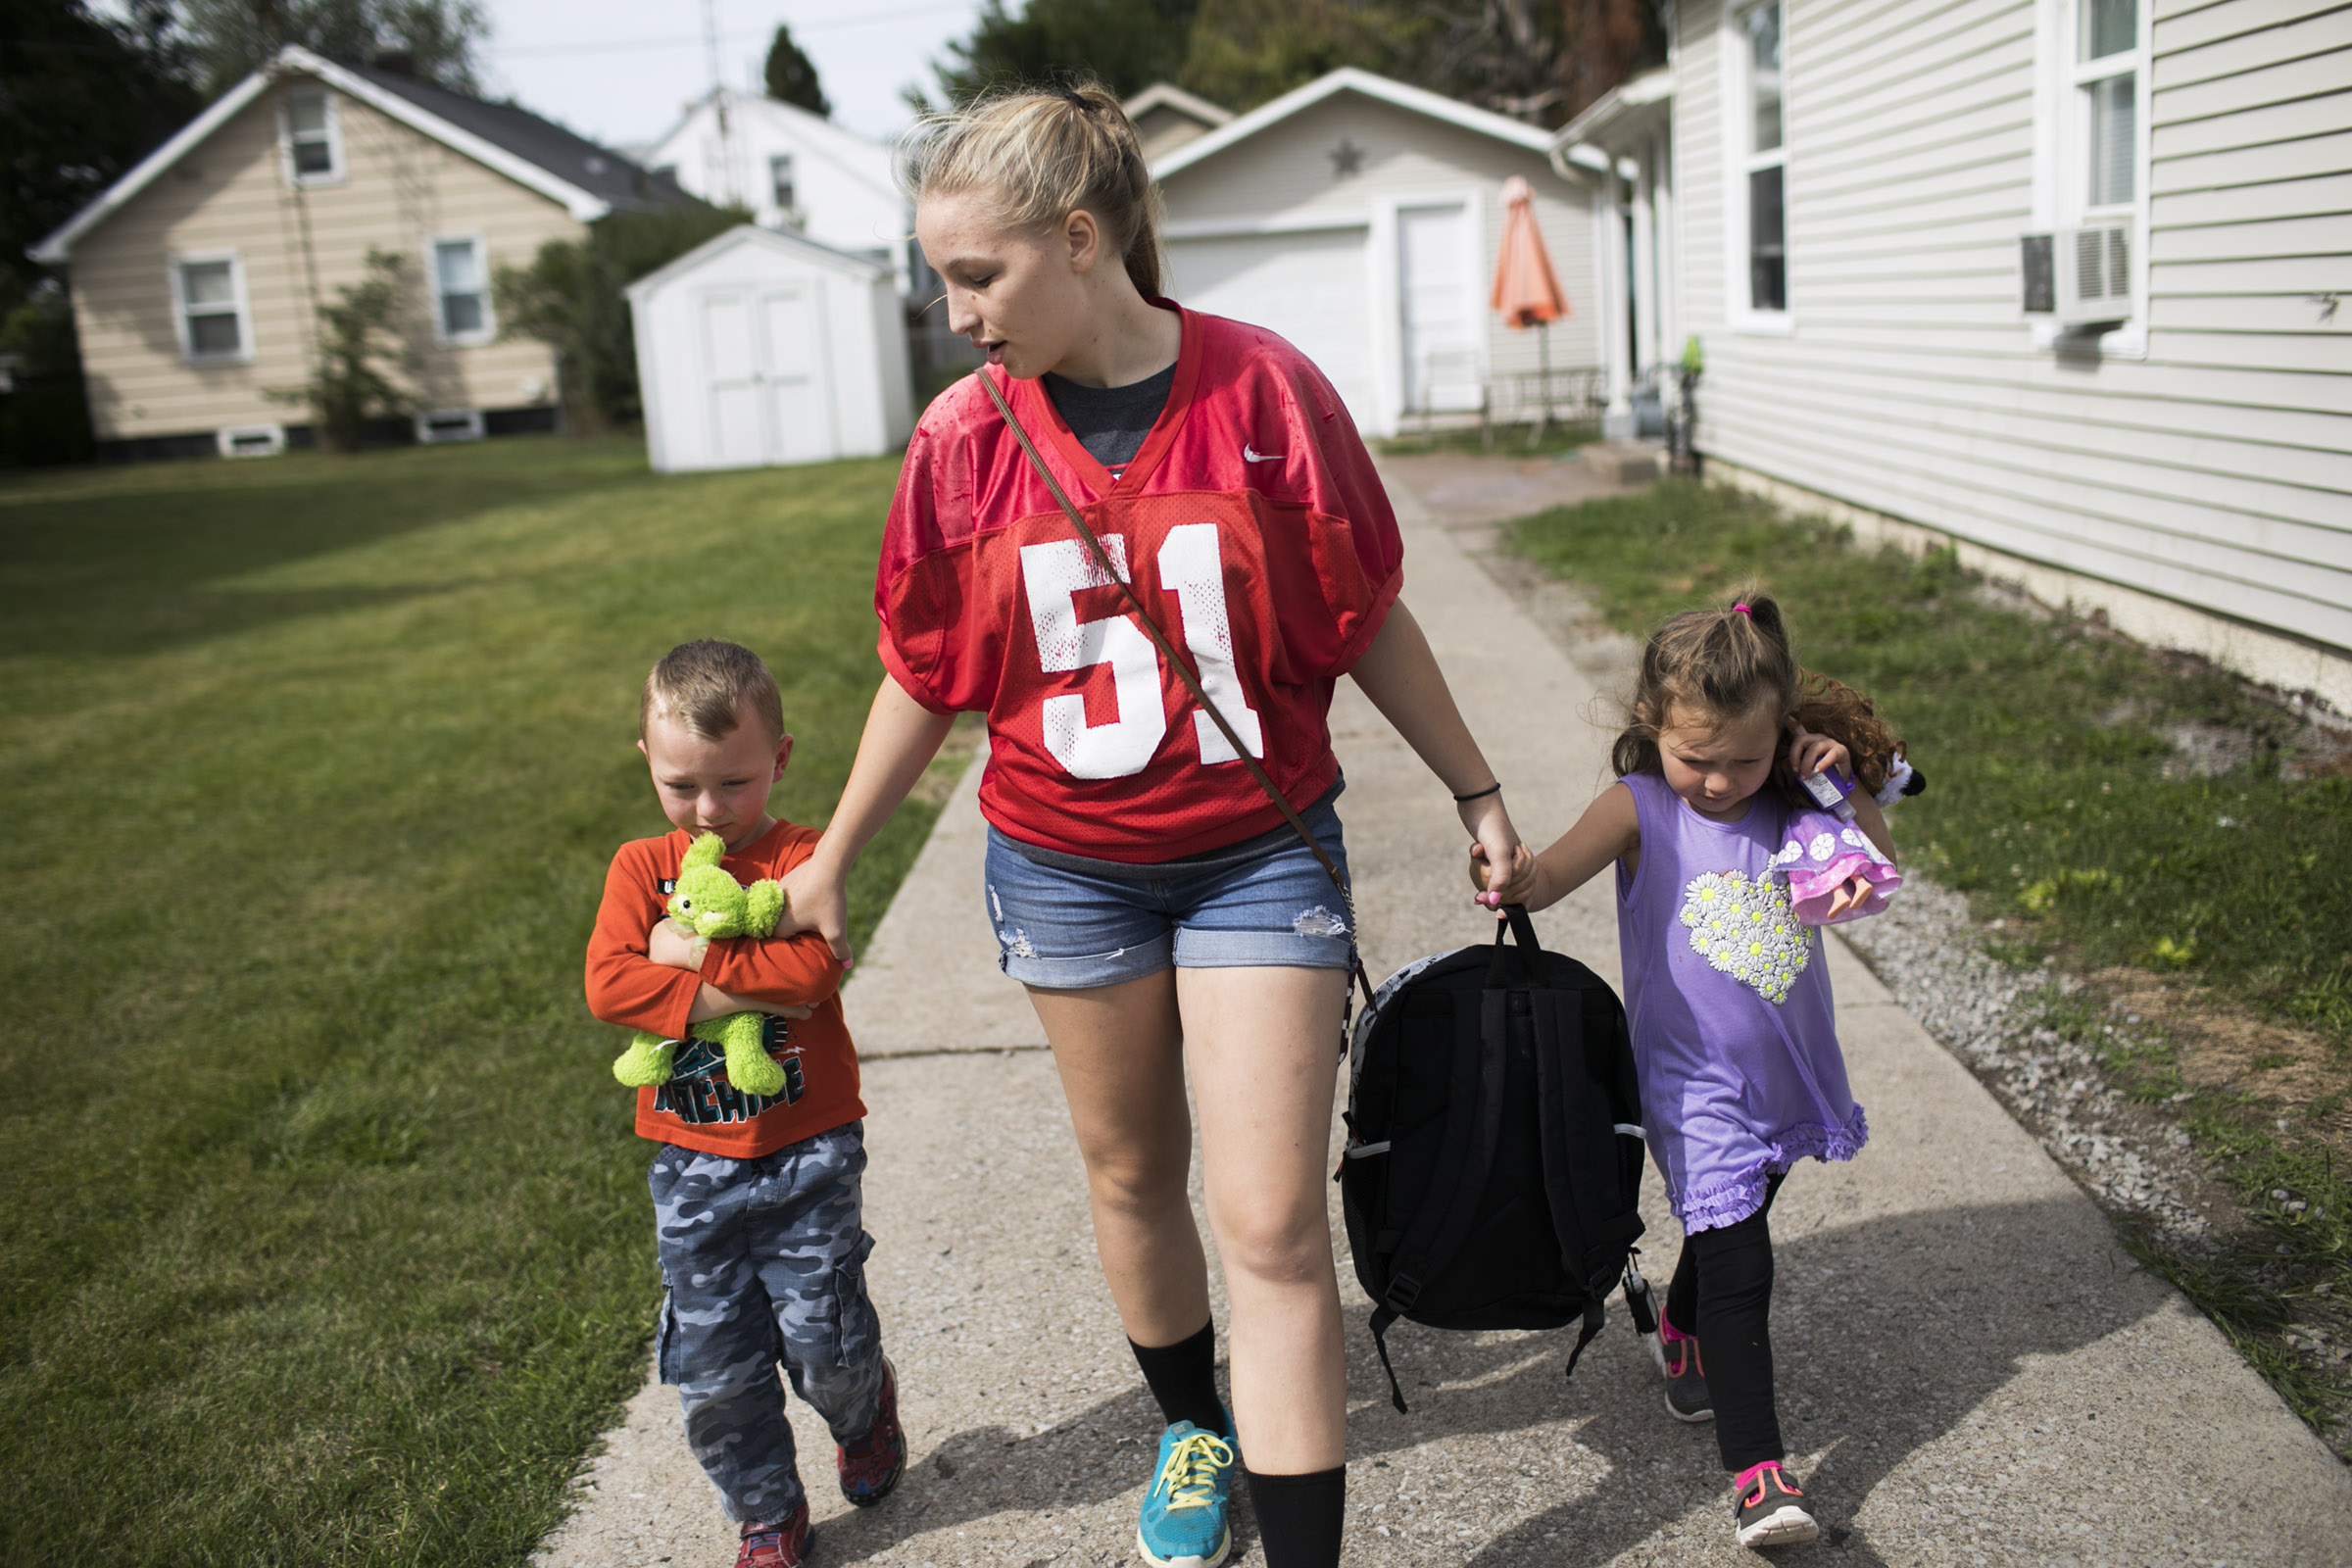 Sonya Casto spent some time with her cousins in Port Clinton, OH. (Photo by Maddie McGarvey)